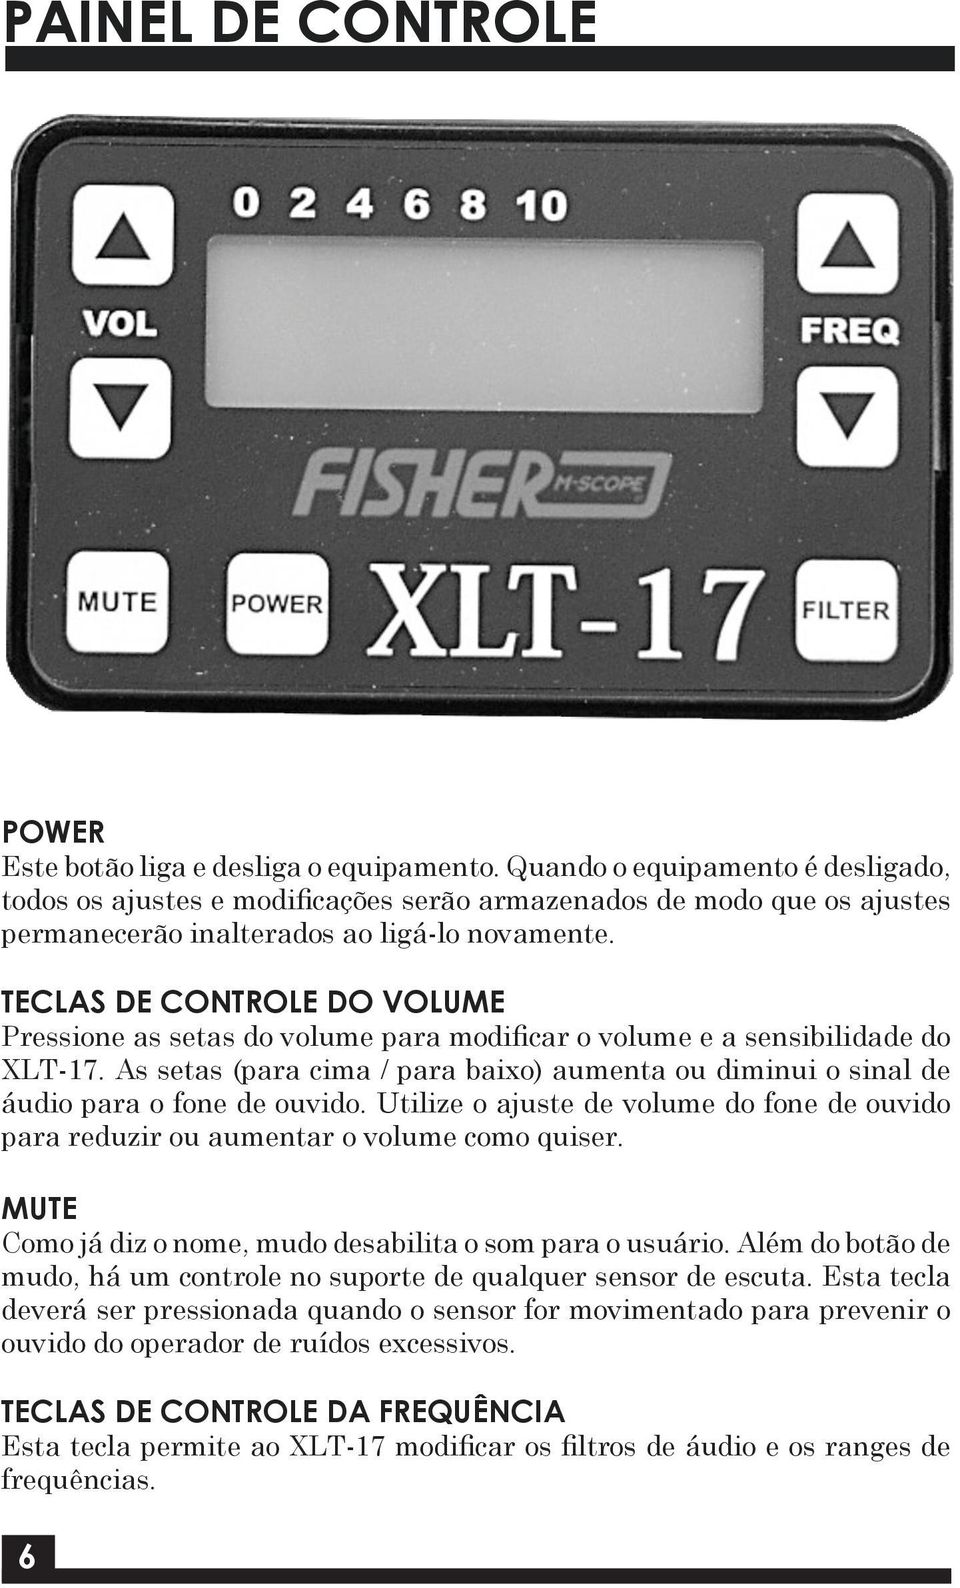 TECLAS DE CONTROLE DO VOLUME Pressione as setas do volume para modificar o volume e a sensibilidade do XLT-17.